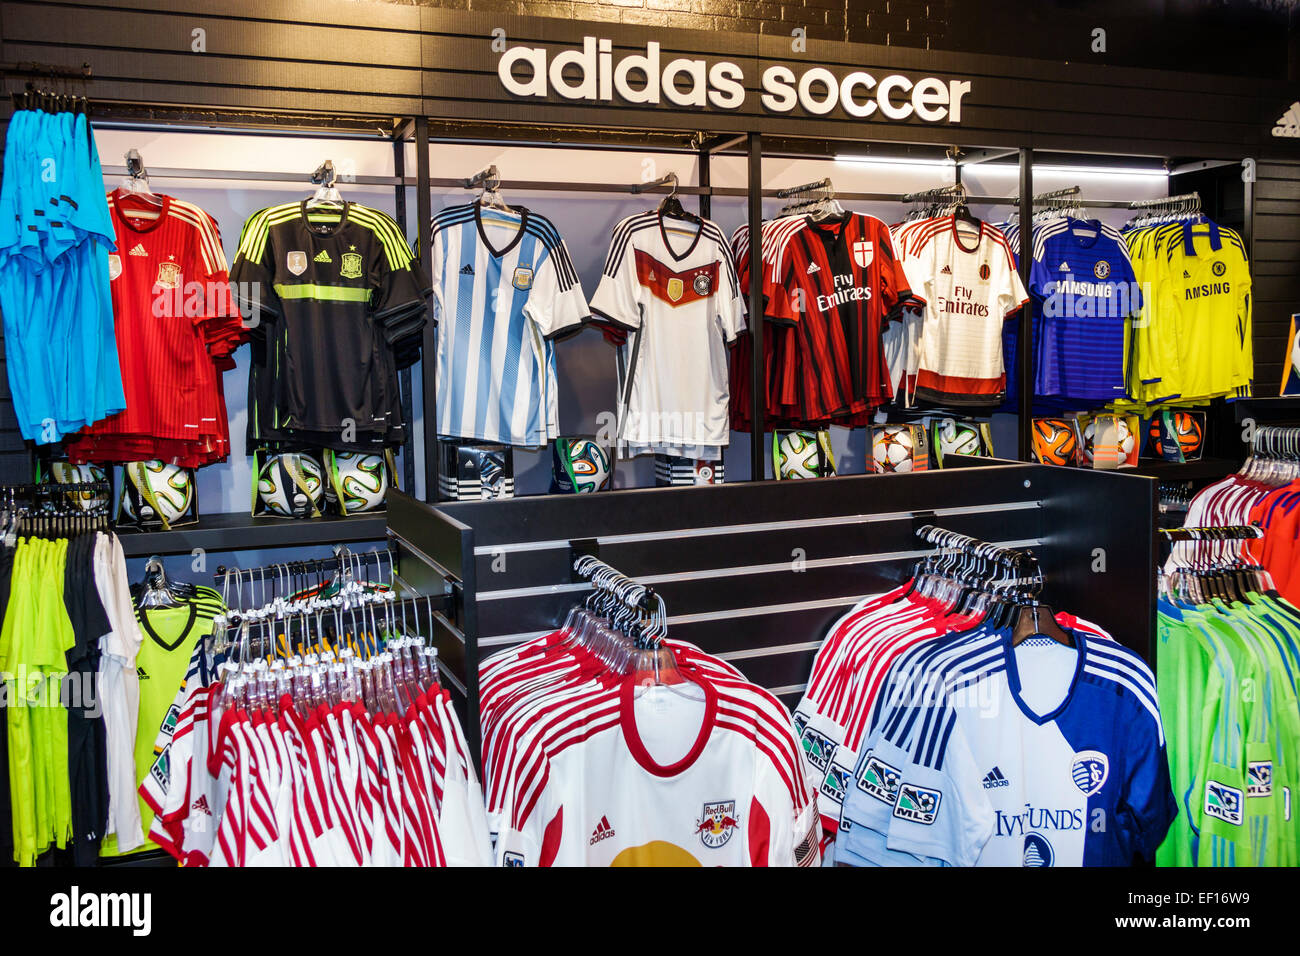 Orlando in Florida Lake Buena Vista di Downtown Disney Dining shopping  divertimento United World Soccer store a56381f1bfb2